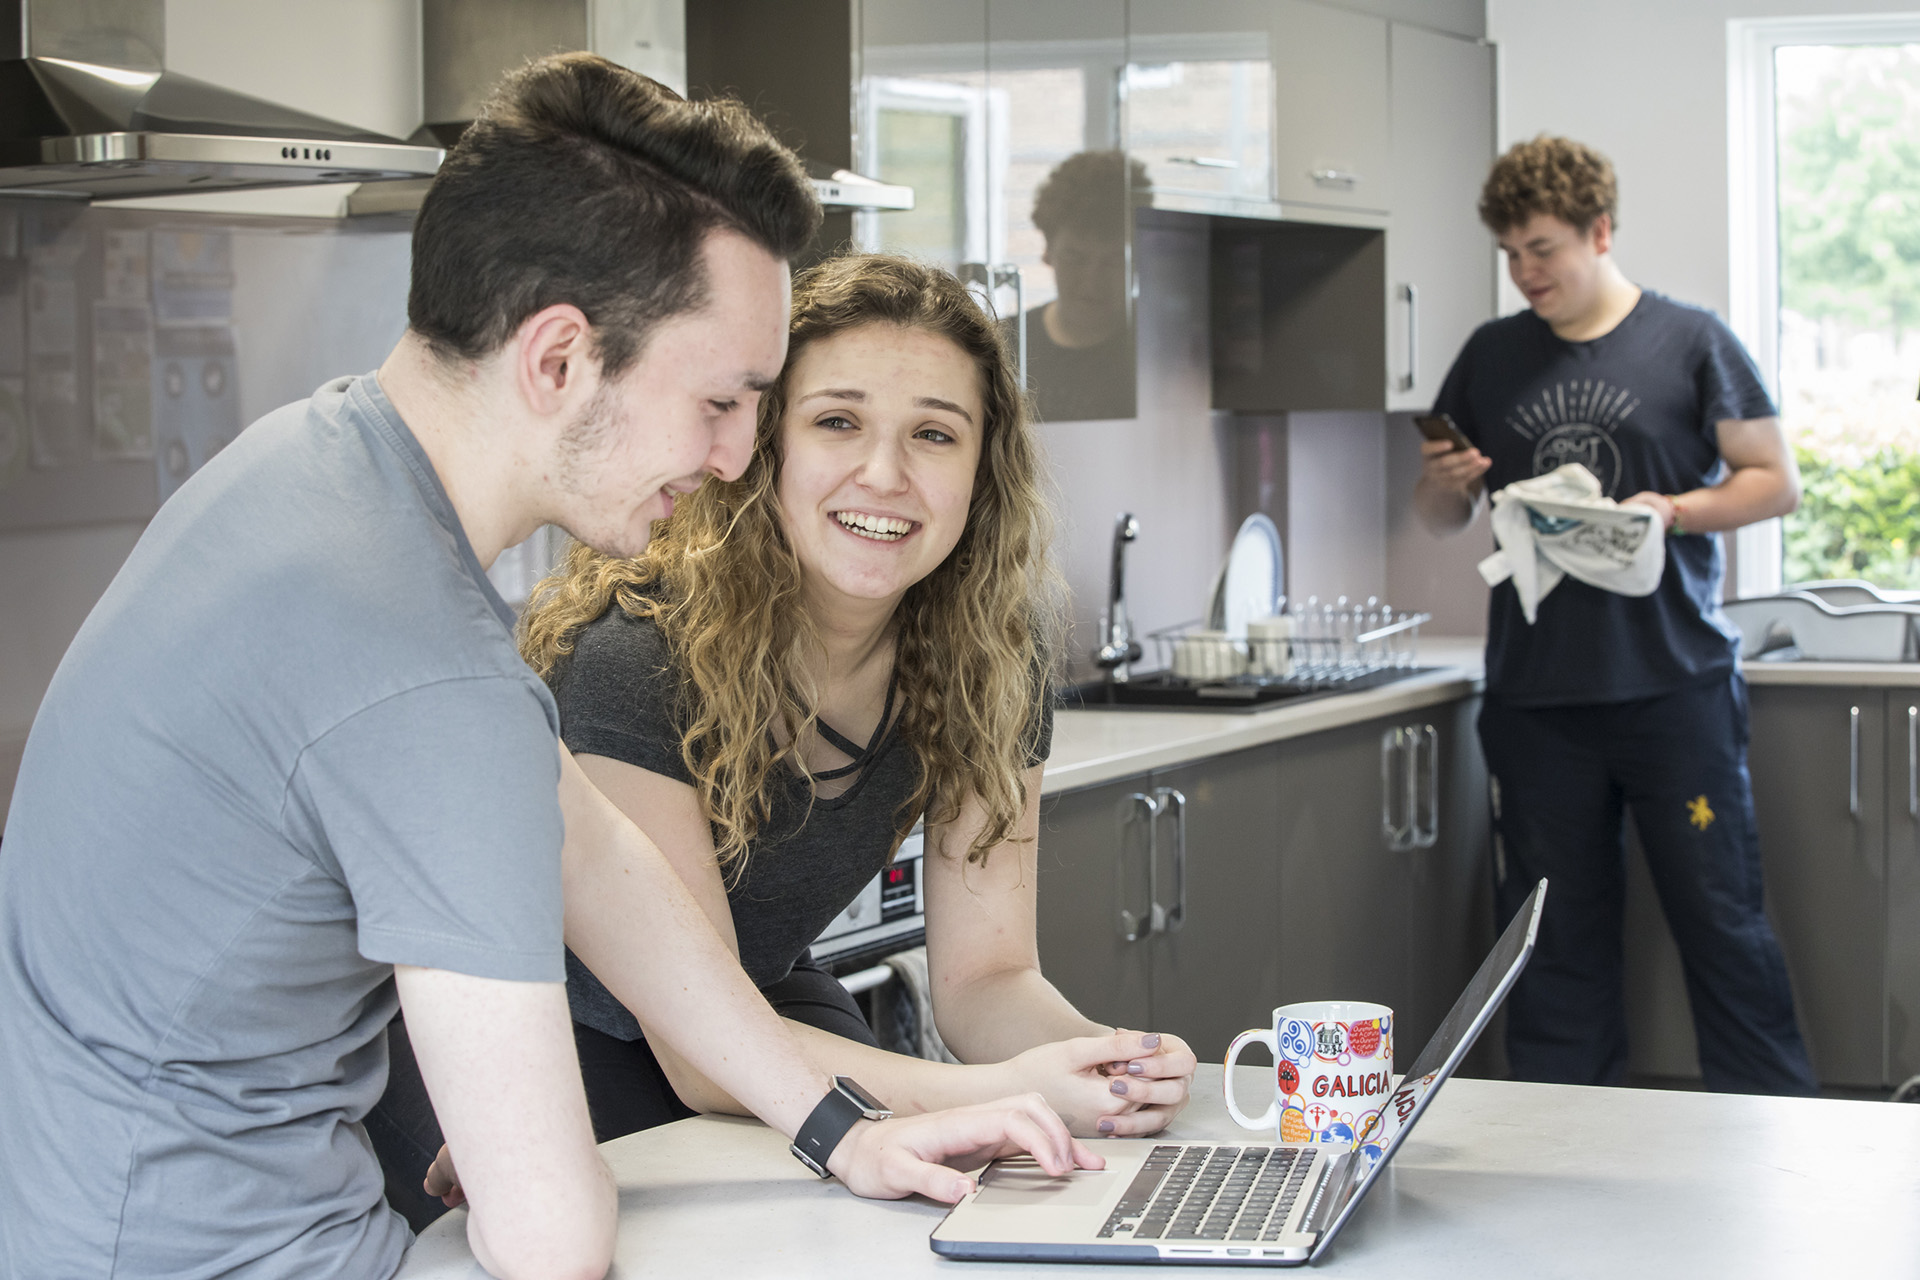 3 students in university accommodation kitchen